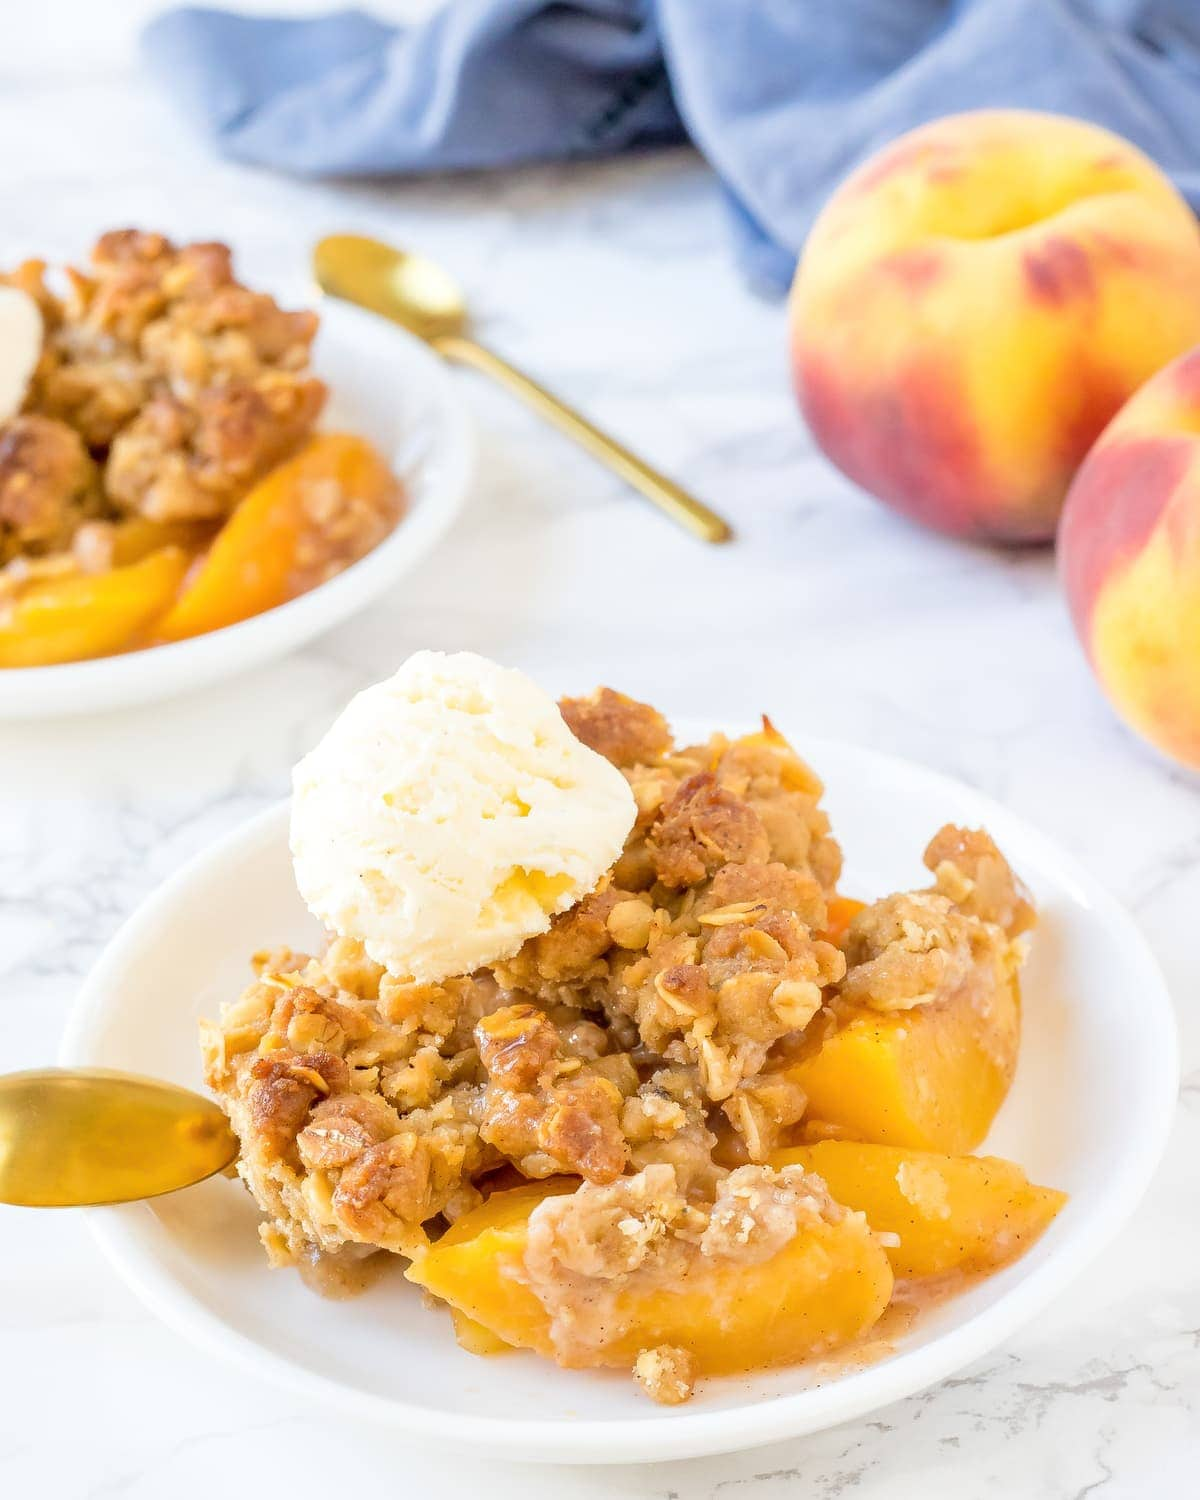 Easy peach crisp in bowl with ice cream